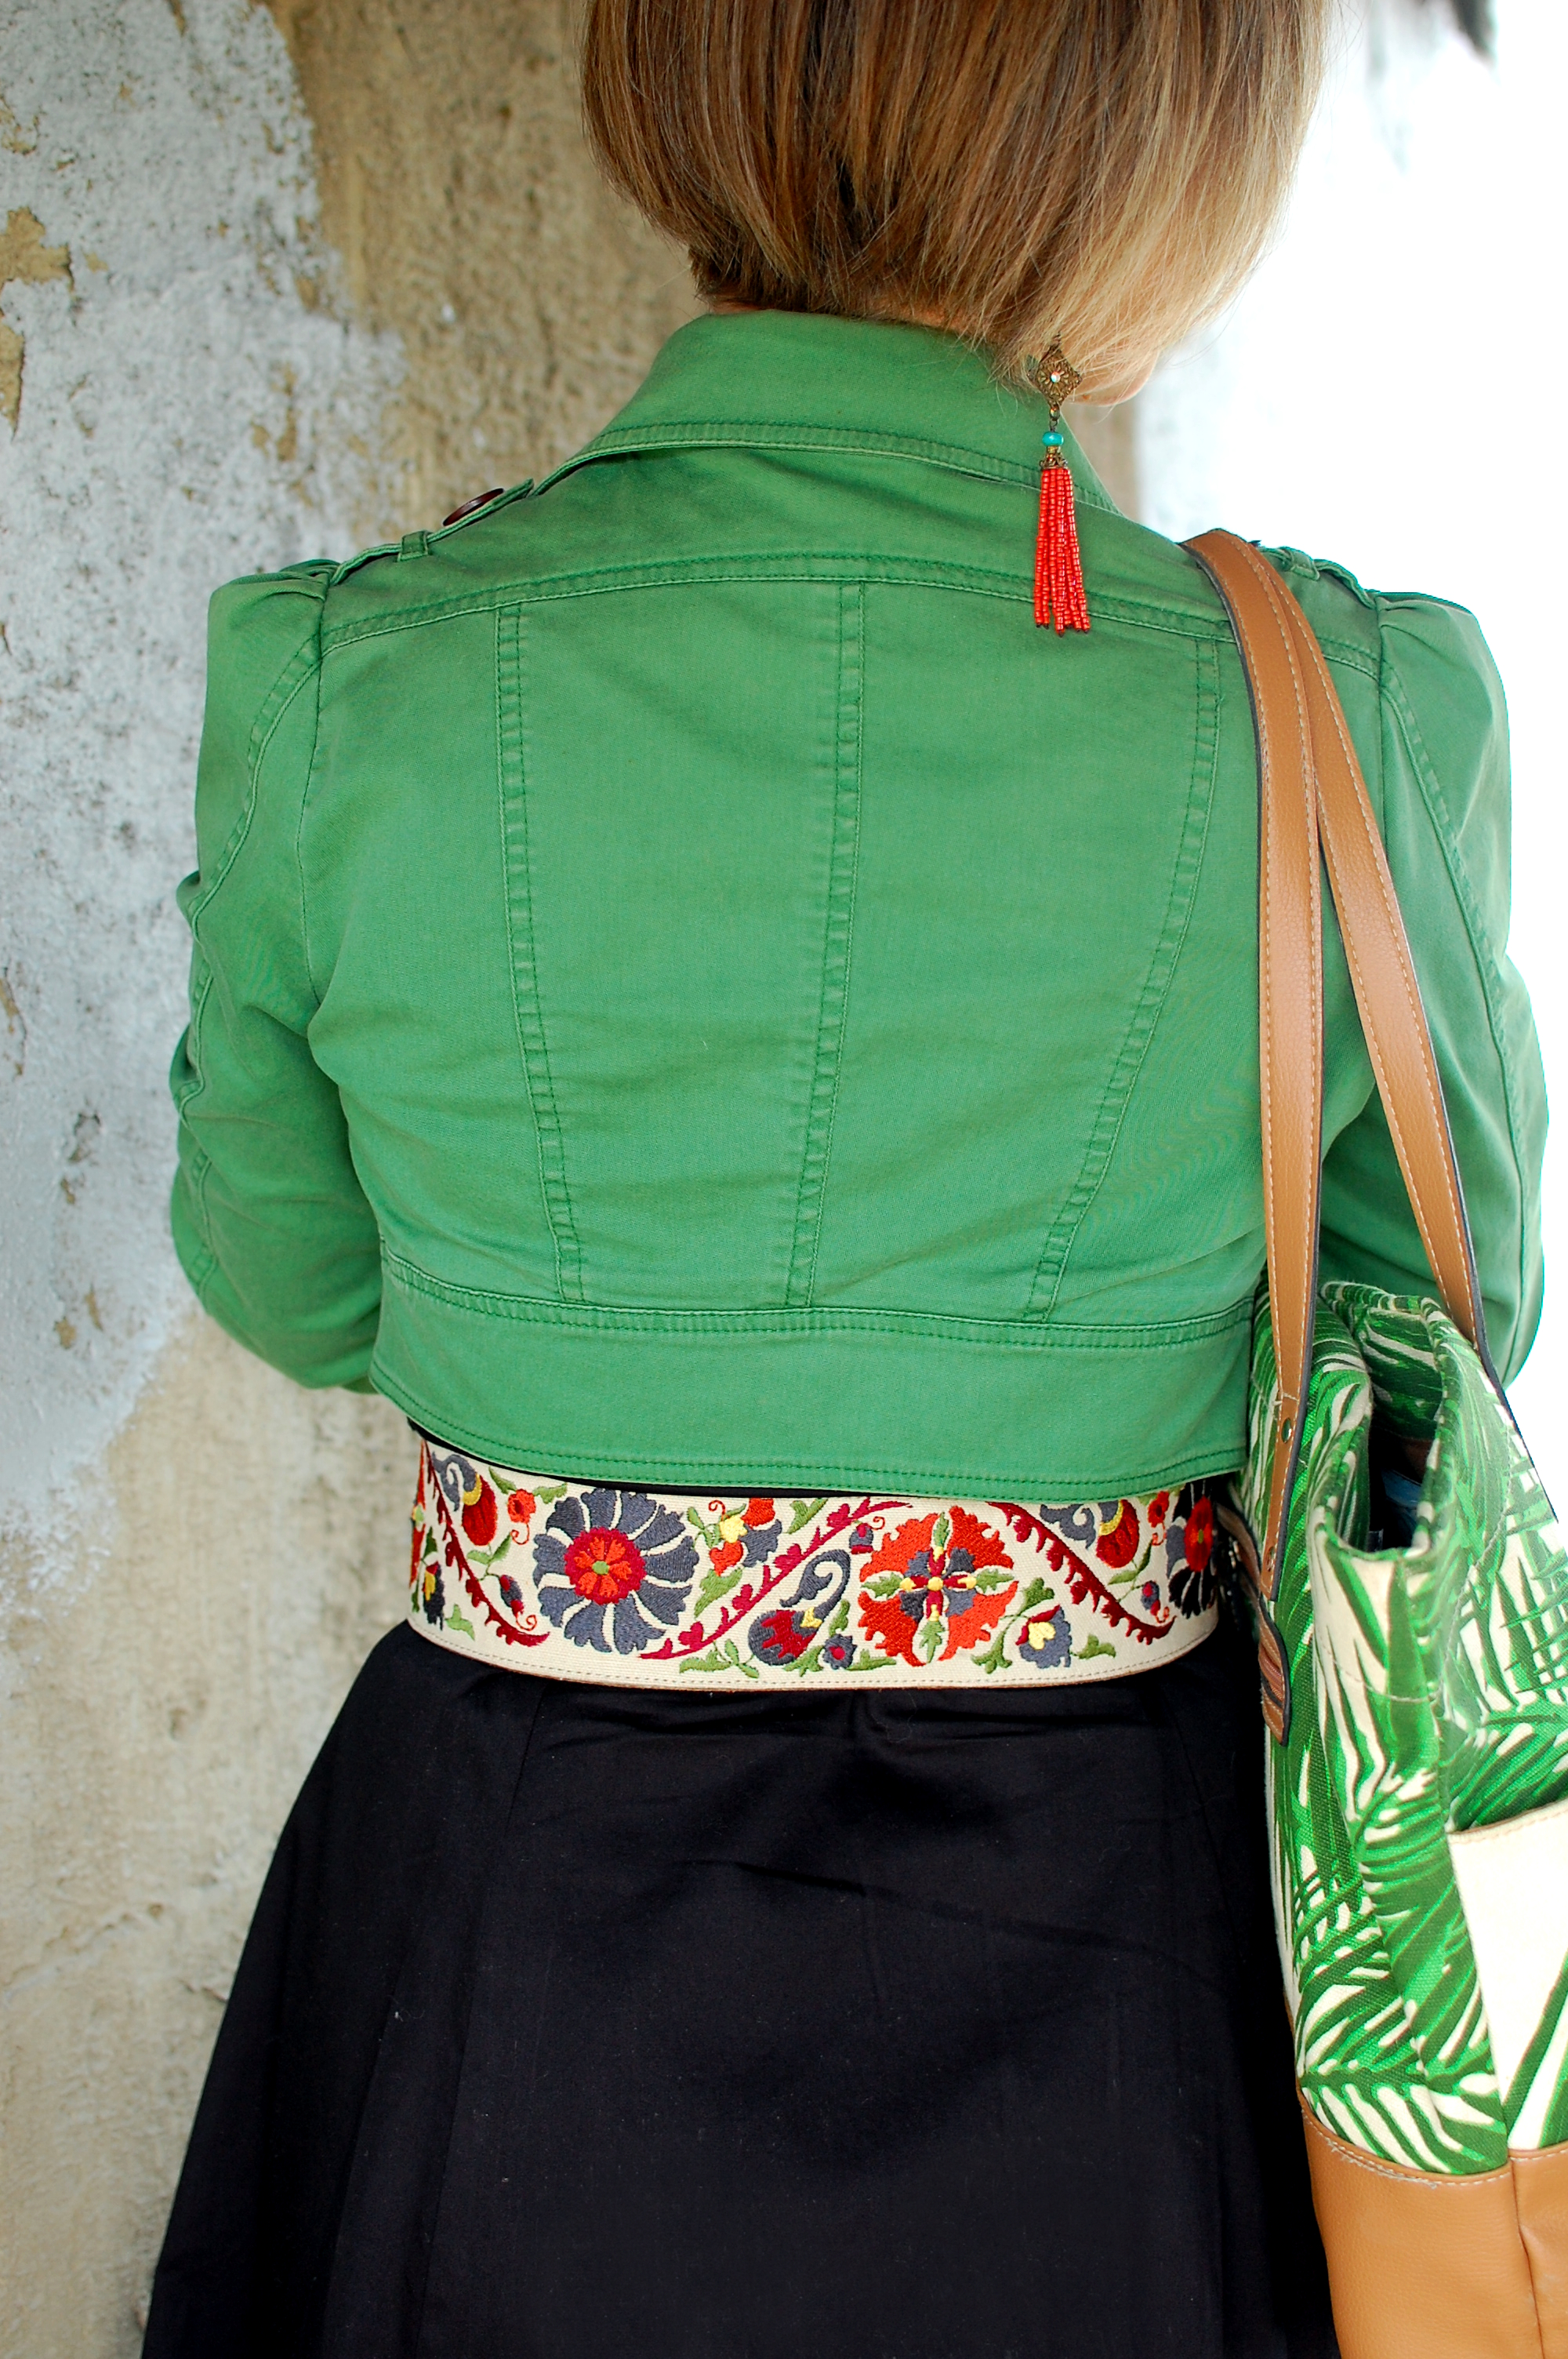 floral belt green trench jacket palm print bag beaded tassel earring whatiwore2day ootd